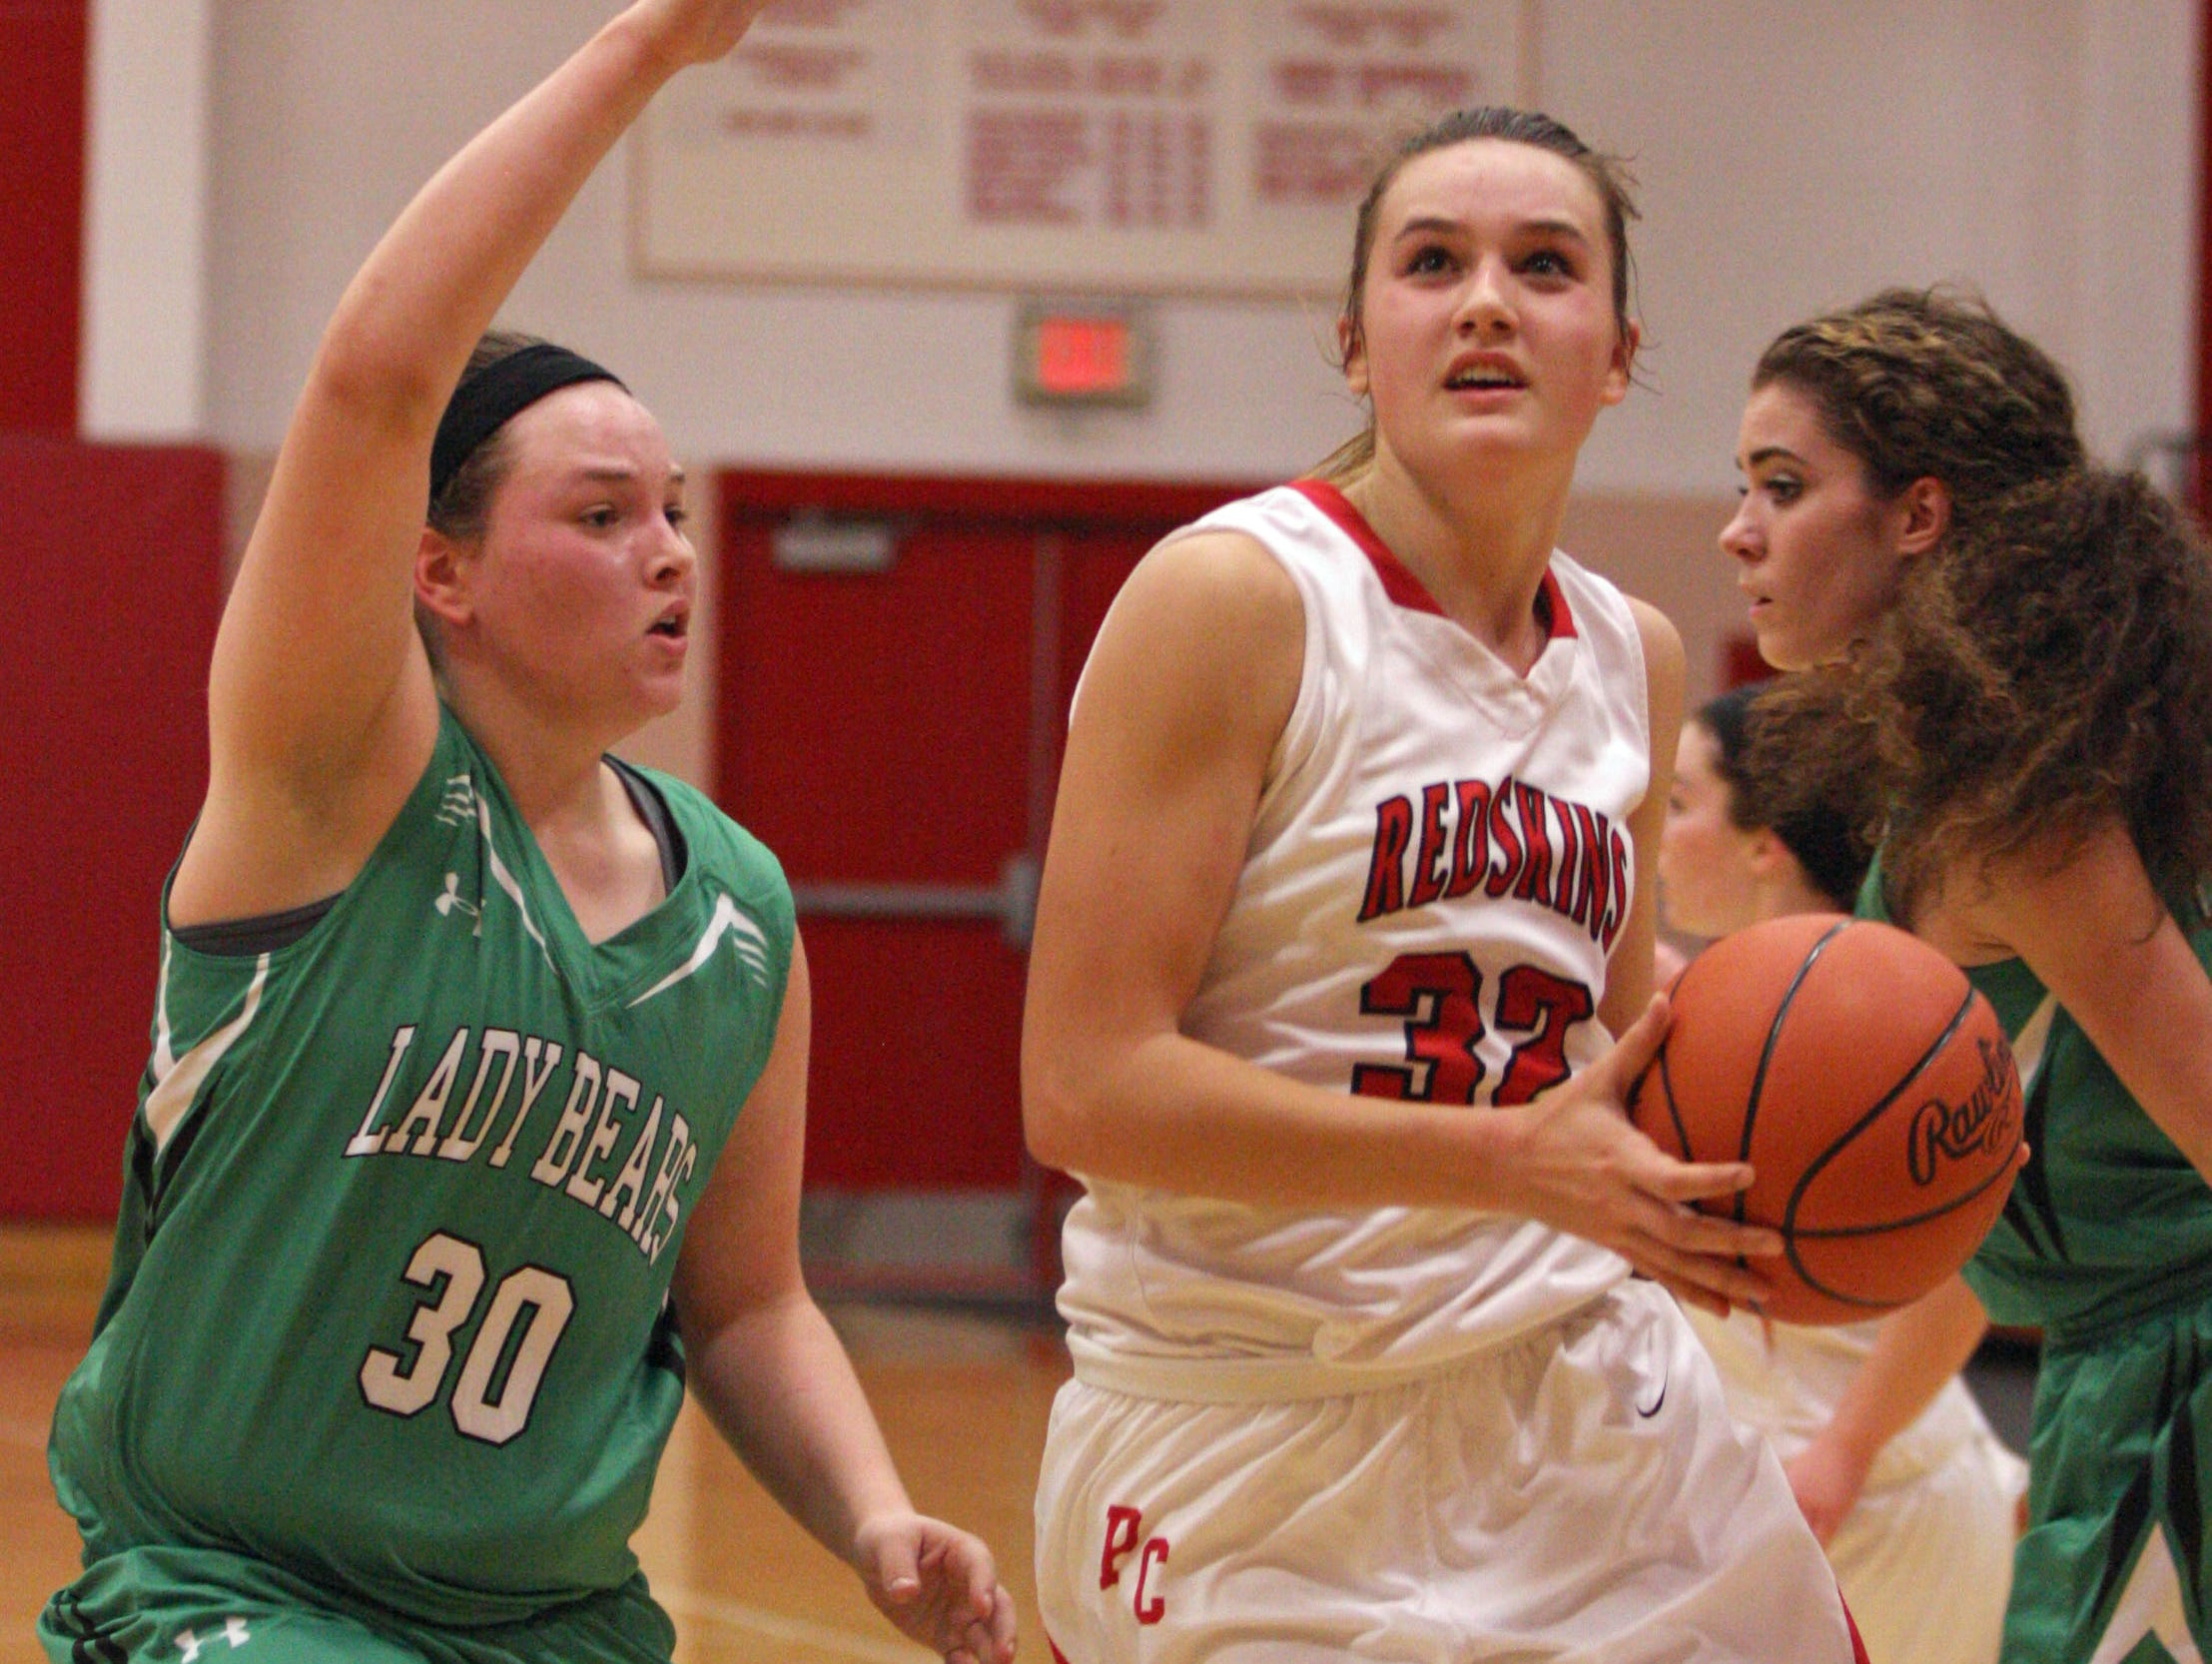 Port Clinton's Sydney Alexander drives to the basket as Margaretta's Paige Black defends Wednesday.